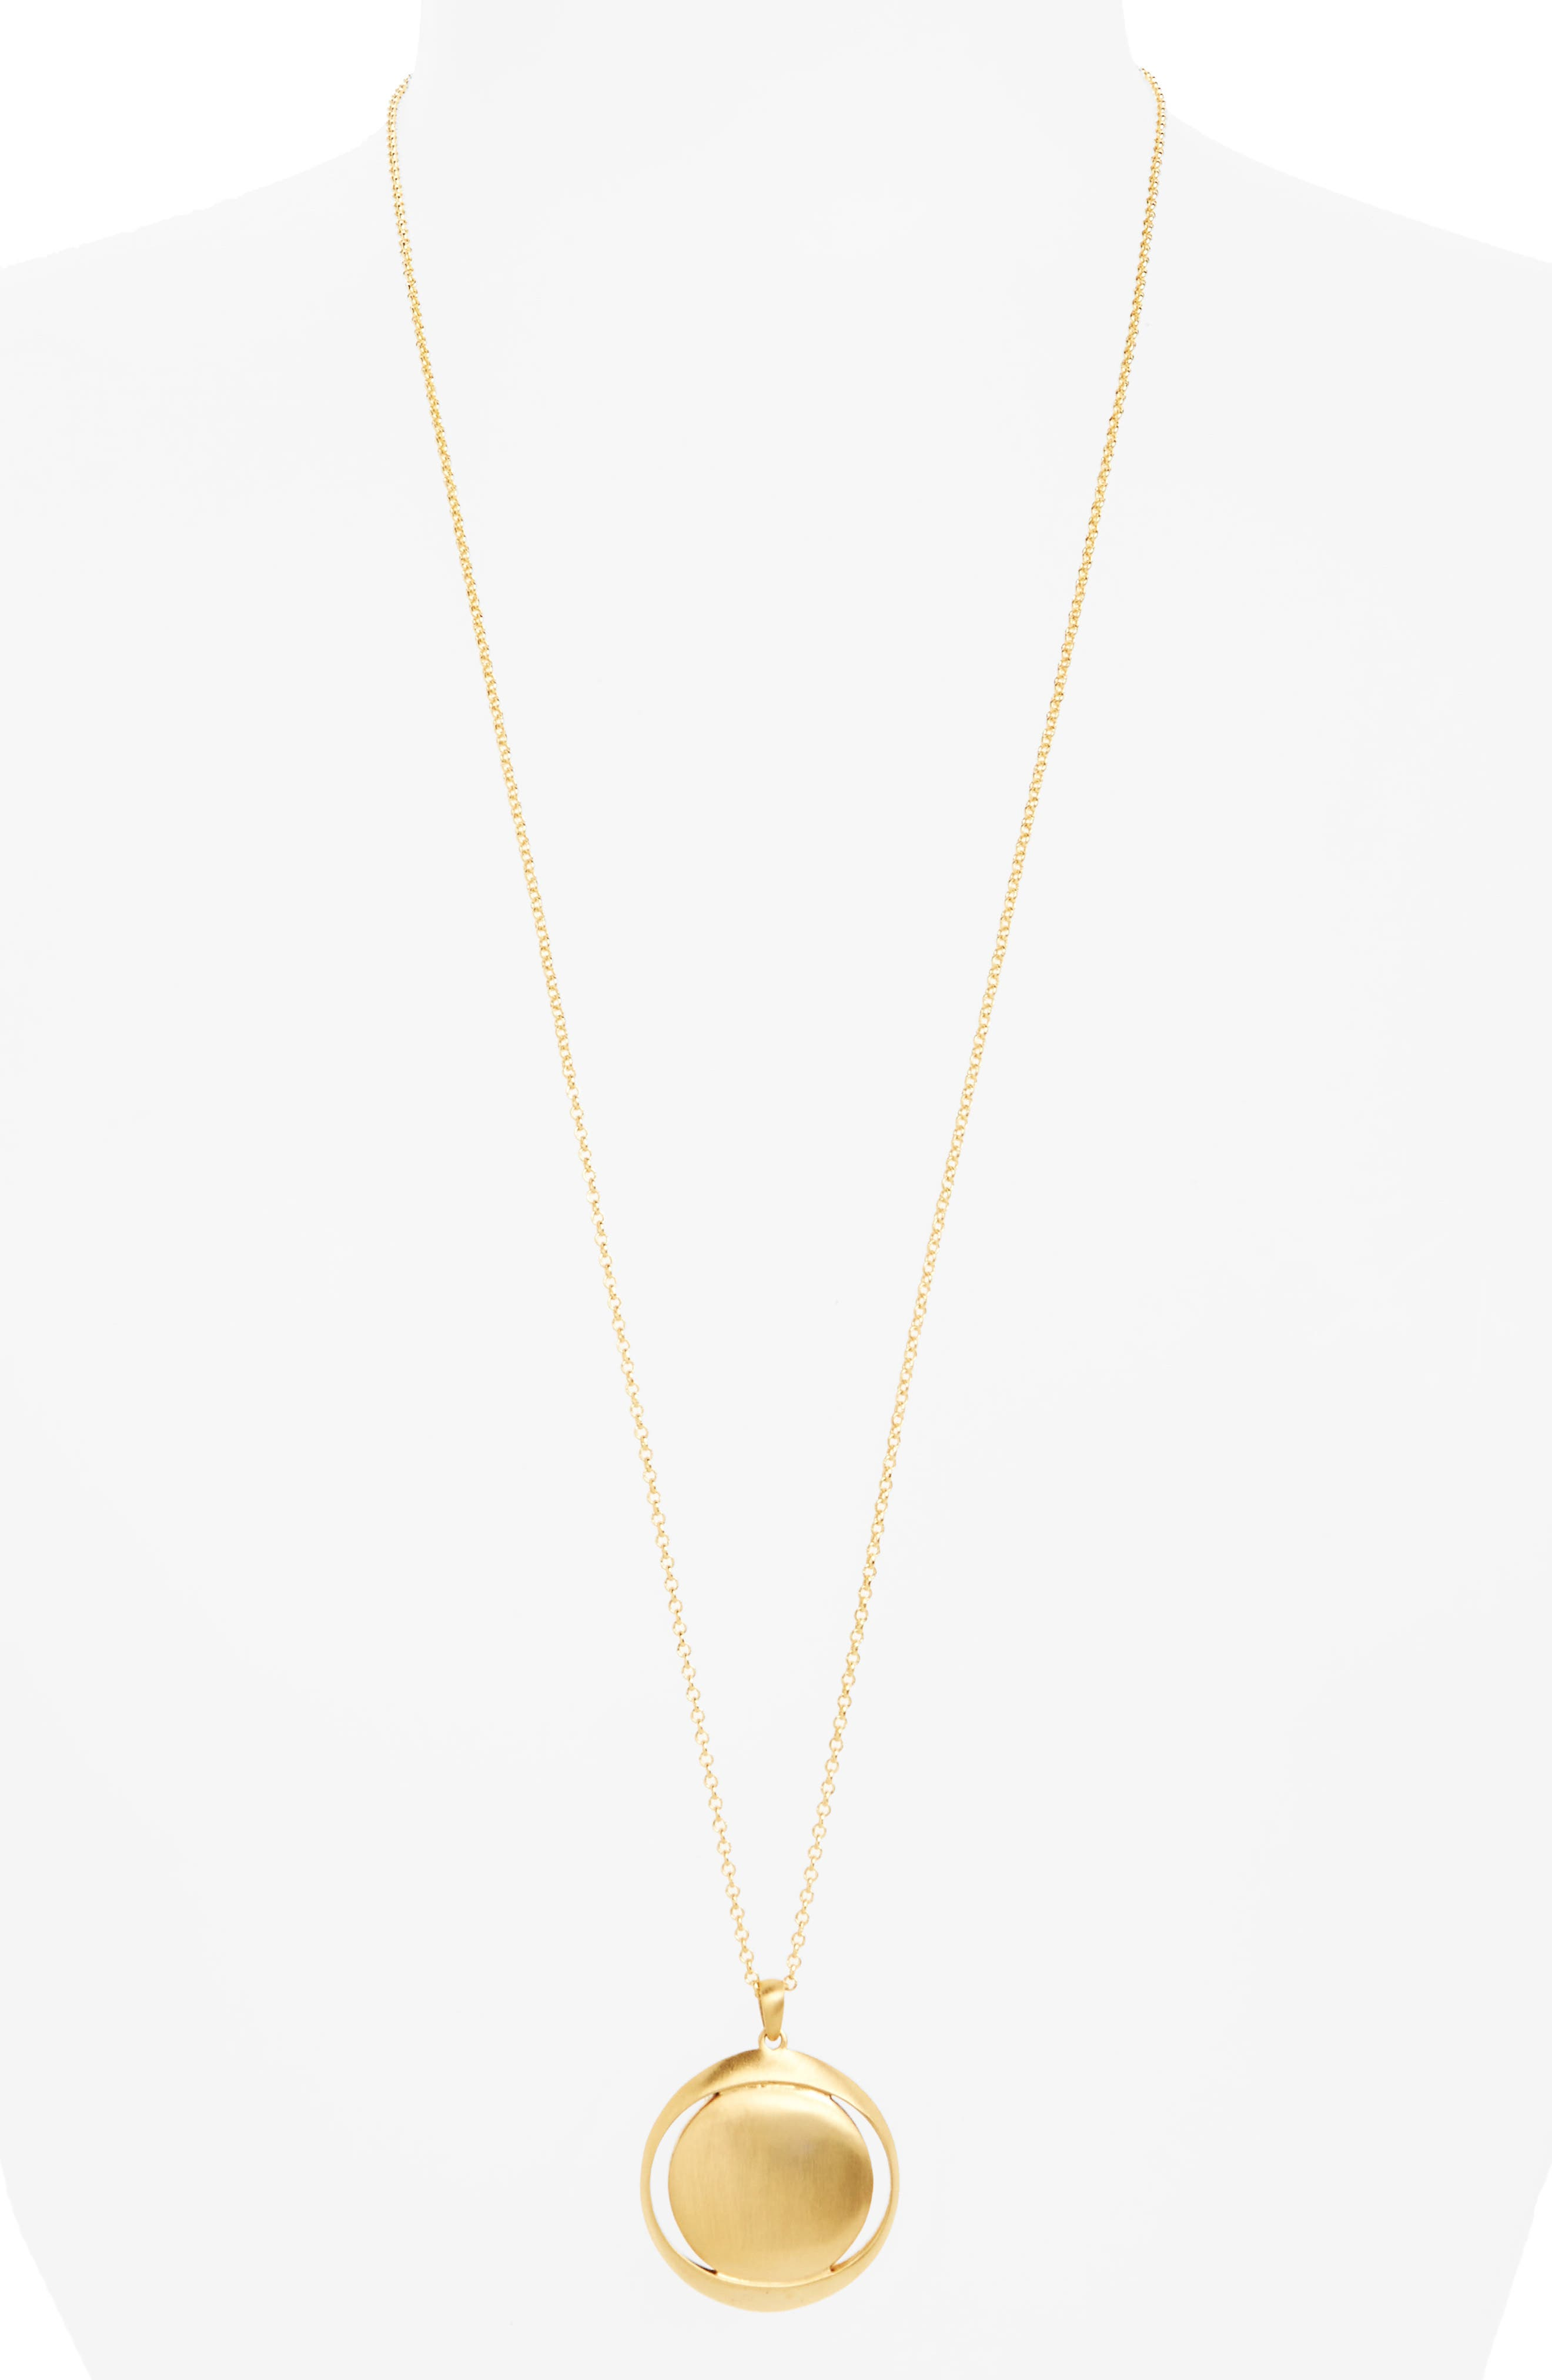 Main Image - Dean Davidson Plain Lapa Pendant Necklace